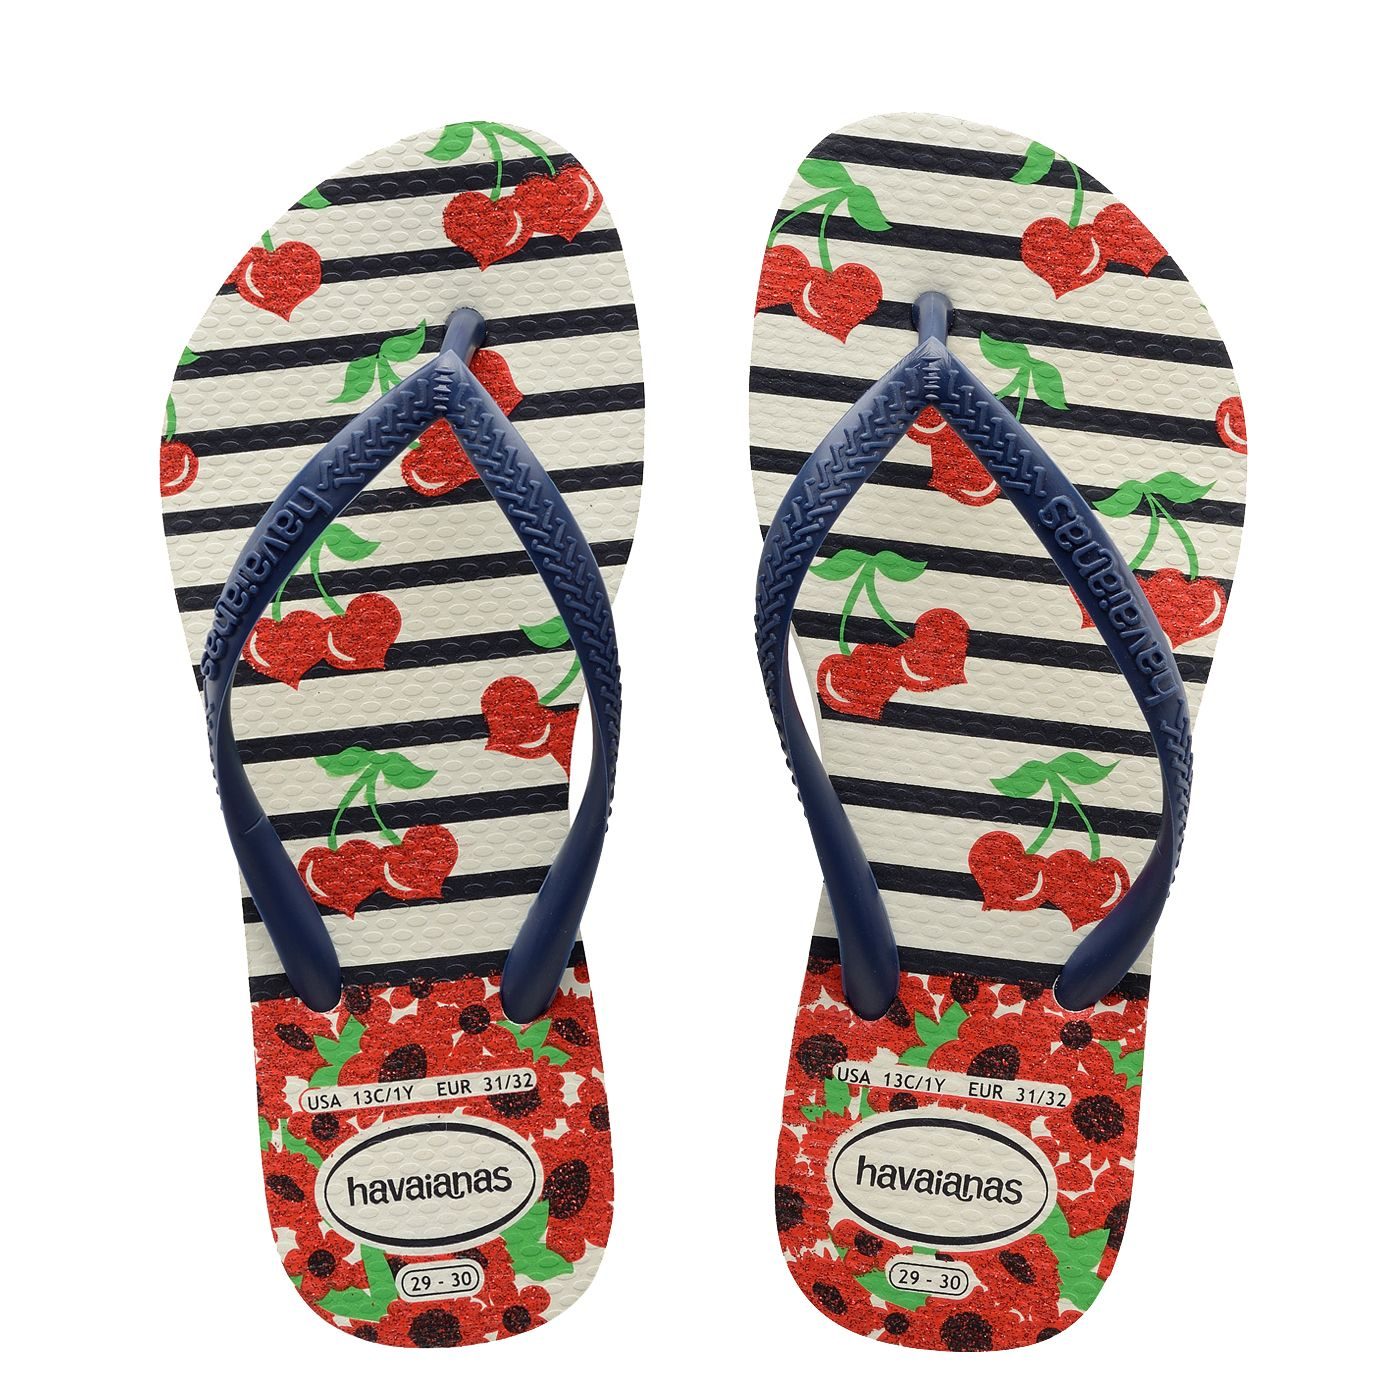 906b4c5fa Havaianas Kids Slim Fashion White Navy Blue Thongs. A new season Havaianas  print for